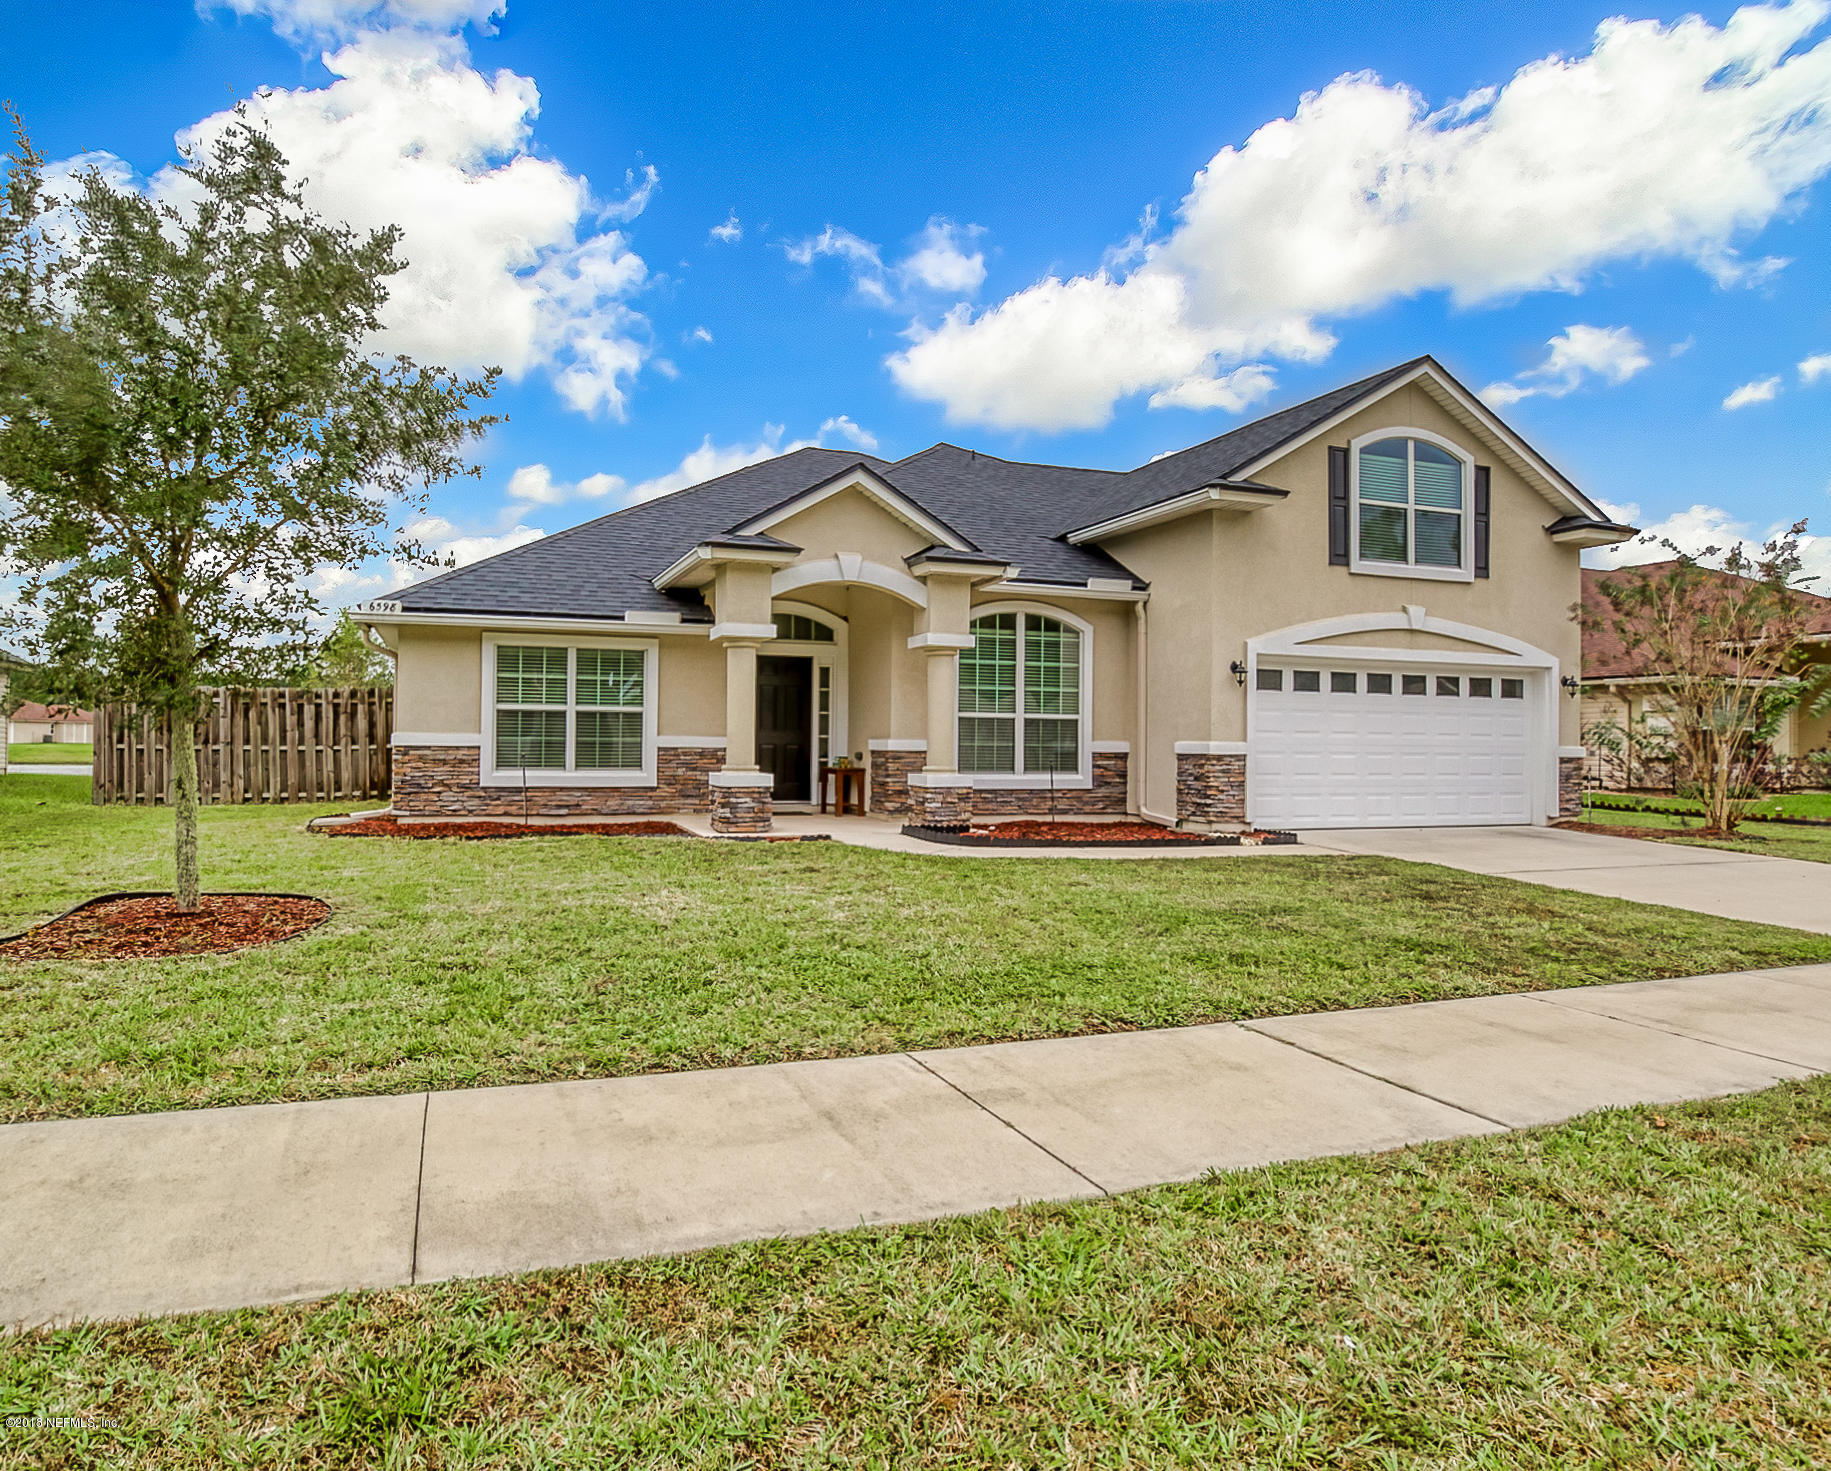 6598 COLBY HILLS, JACKSONVILLE, FLORIDA 32222, 4 Bedrooms Bedrooms, ,3 BathroomsBathrooms,Residential - single family,For sale,COLBY HILLS,967516